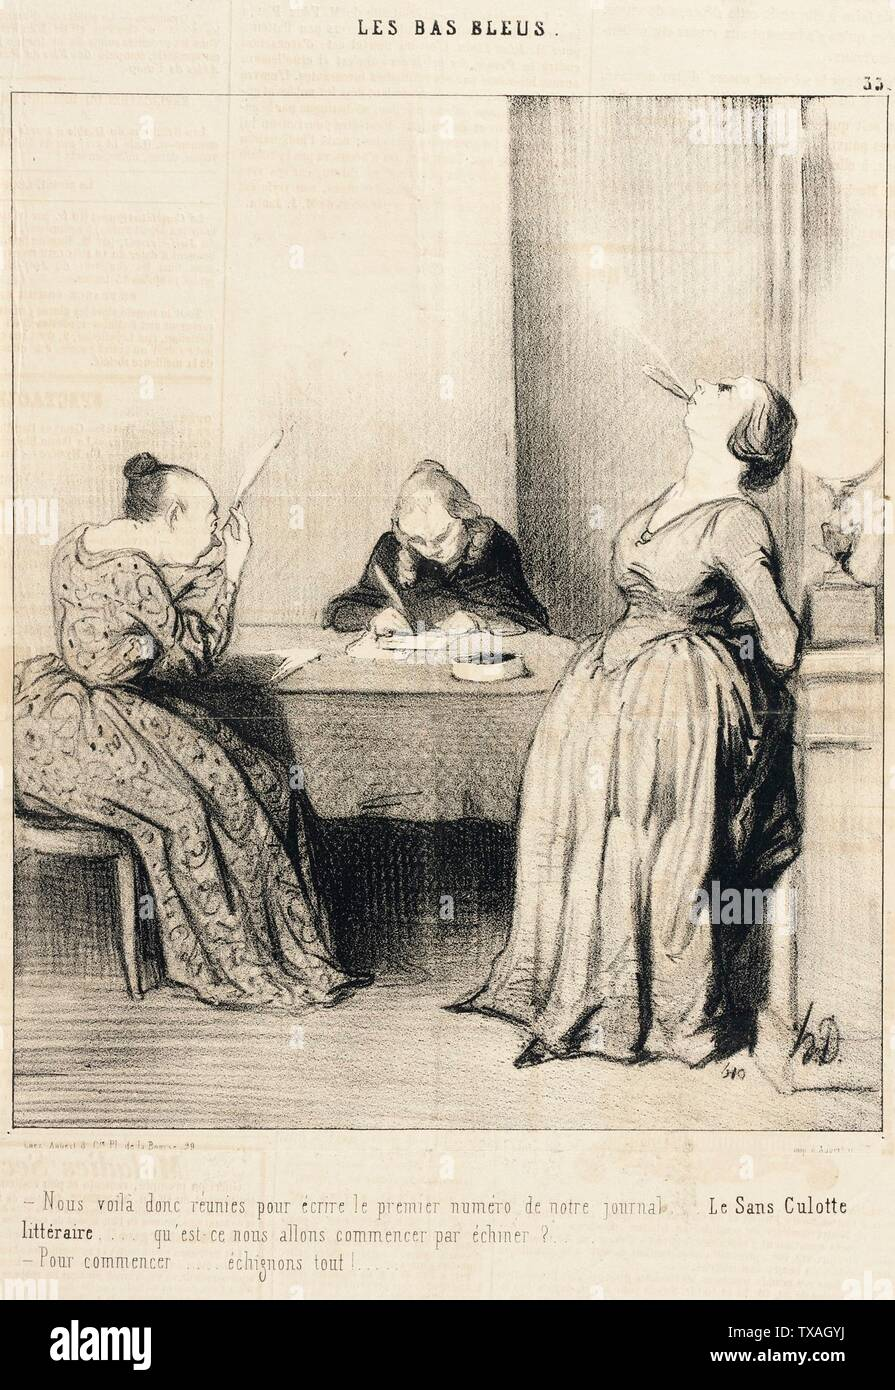 'Nous voilà...réunies pour écrire le premier numéro...; English:  France, 1844 Series: Les Bas-blues, no. 33 Periodical: Le Charivari, 14 July 1844 Prints; lithographs Lithograph Sheet: 8 3/4 x 7 5/16 in. (22.23 x 18.57 cm) Gift of Mrs. Florence Victor from The David and Florence Victor Collection (M.91.82.190) Prints and Drawings; 1844date QS:P571,+1844-00-00T00:00:00Z/9; ' - Stock Image